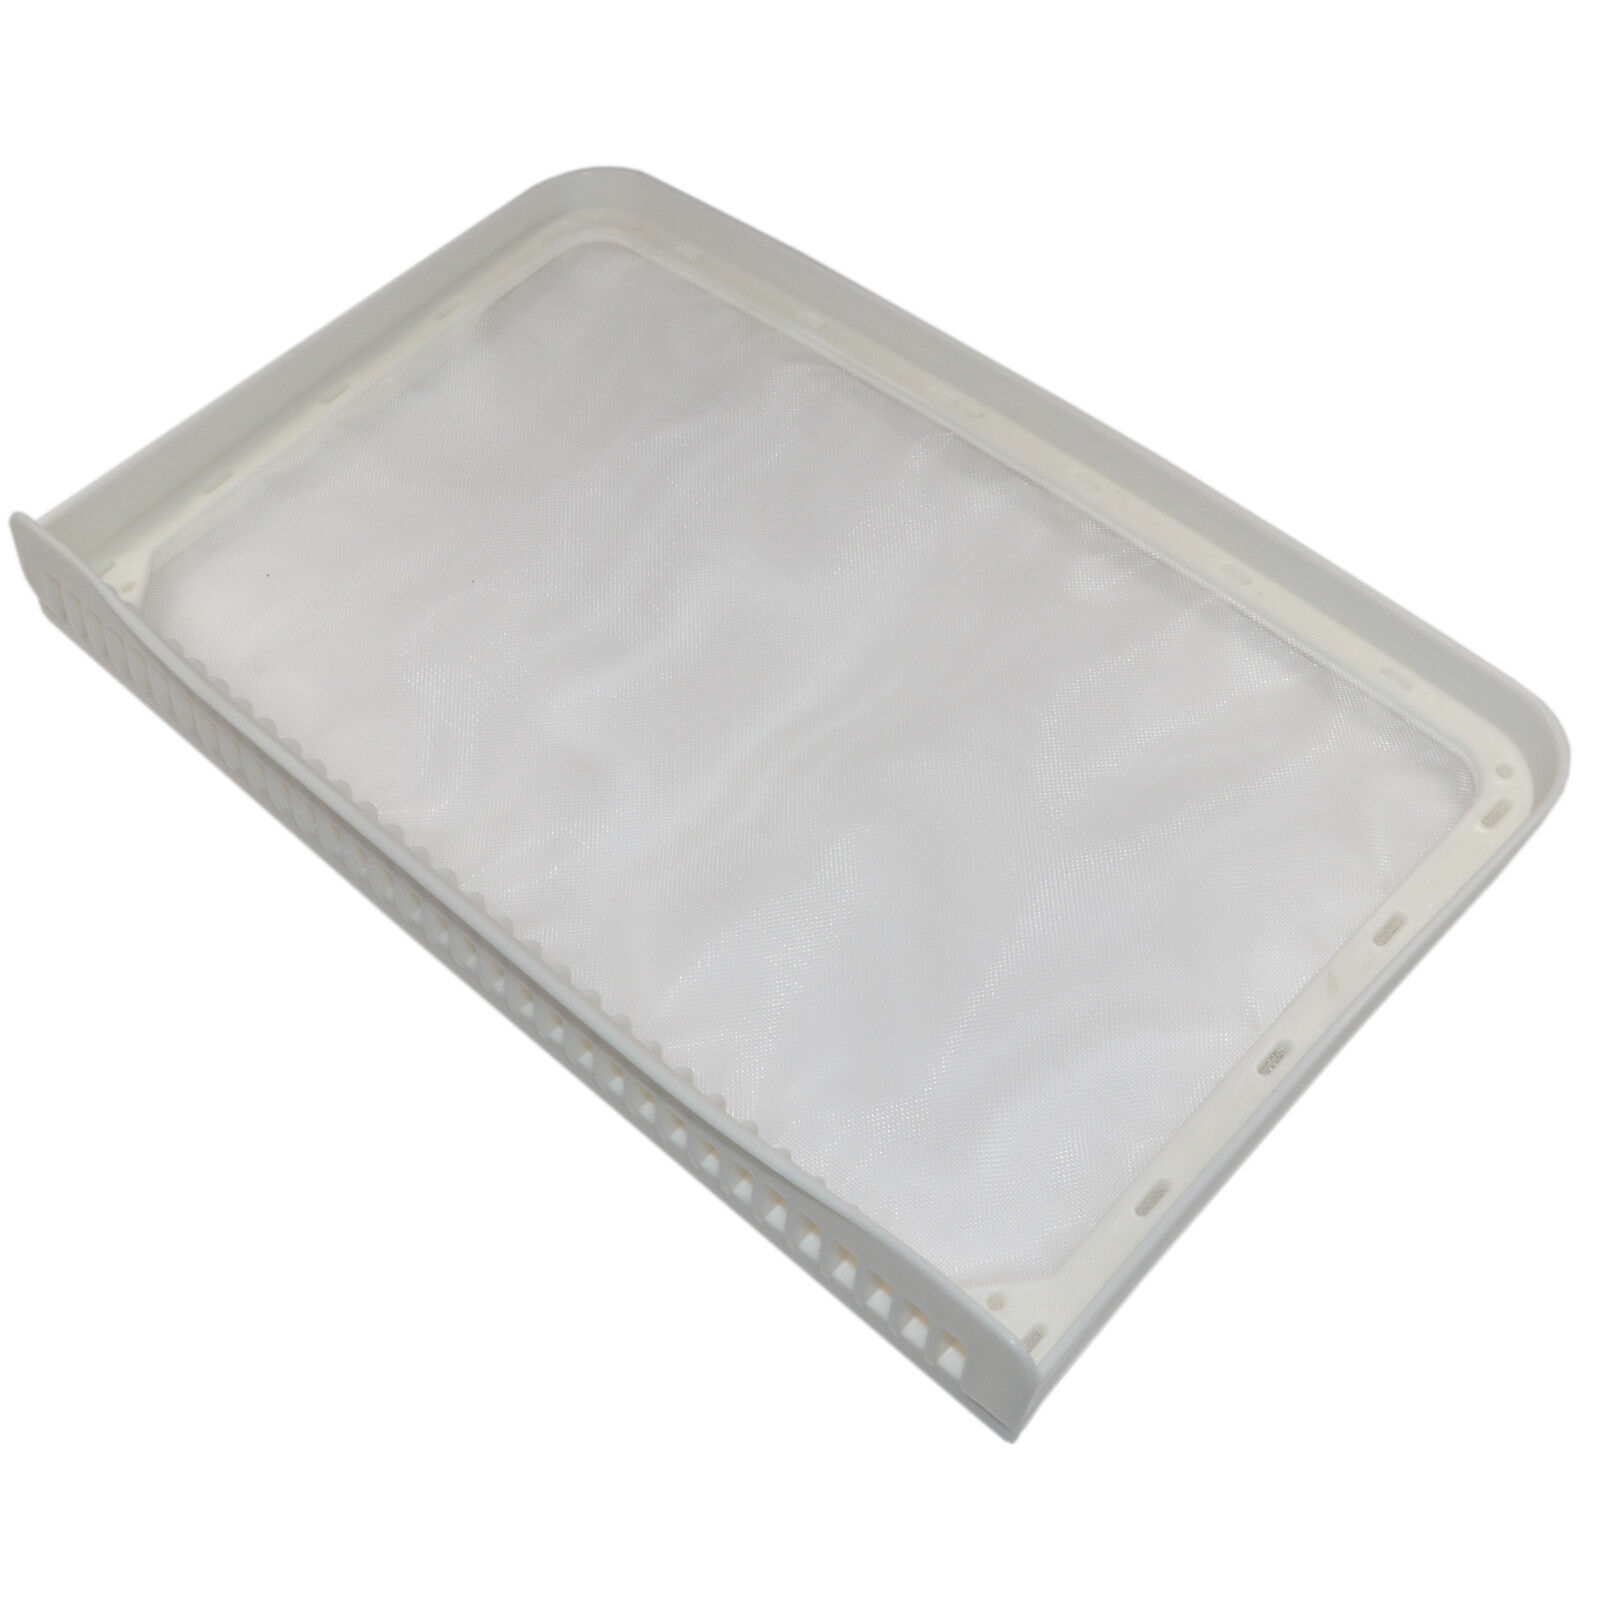 Hqrp Dryer Lint Filter Screen For Maytag Mde Series Dryers 33001808 Electric Model Mde9606ayq Replacement